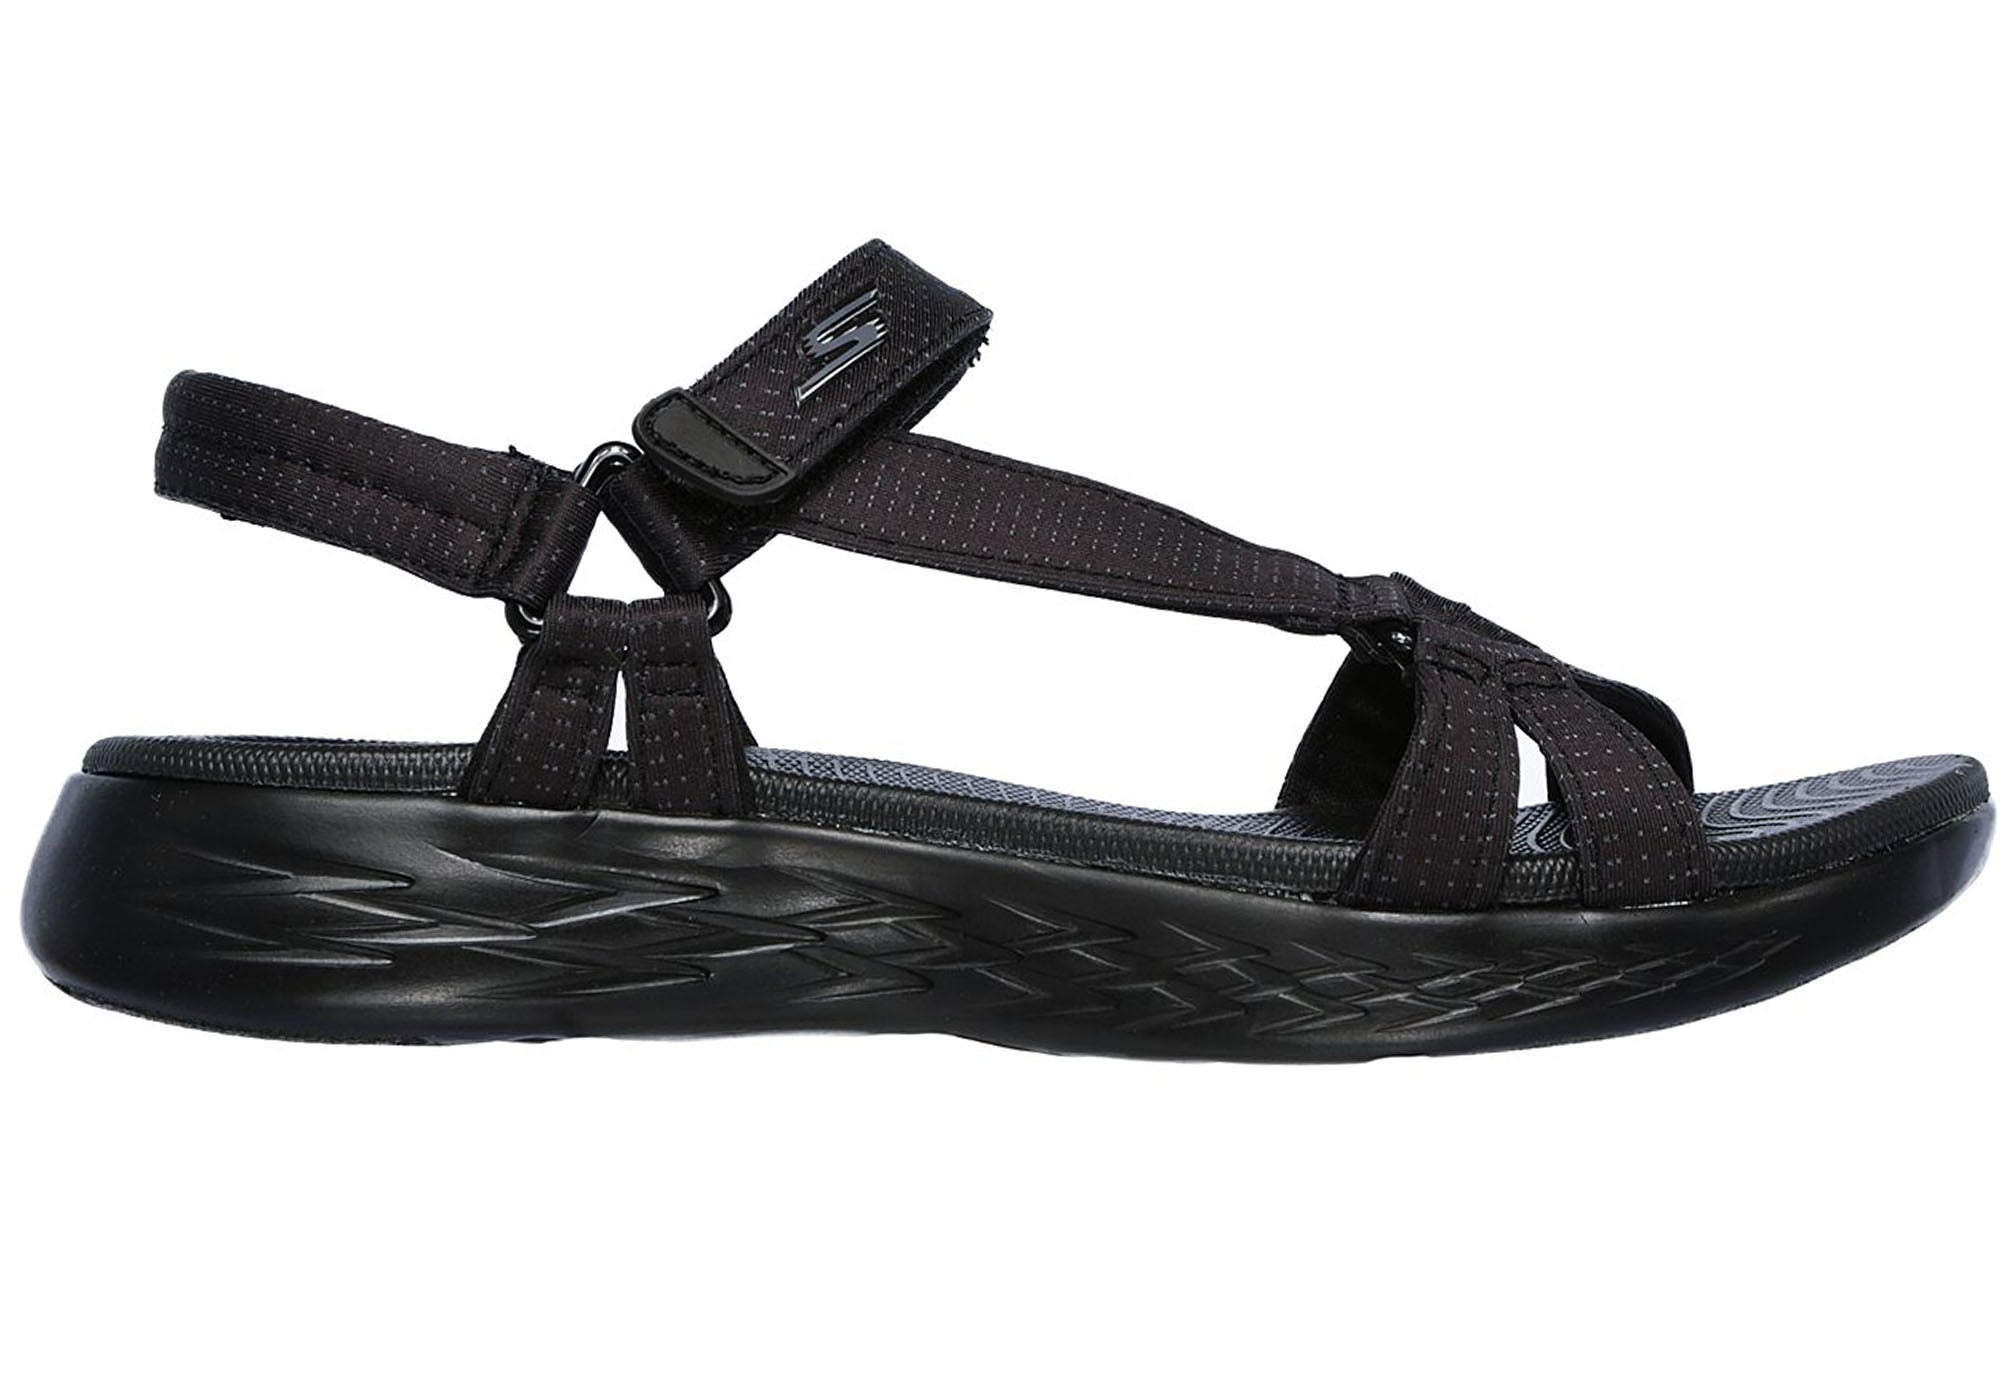 b69bea3f NEW SKECHERS WOMENS ON THE GO CUSHIONED COMFORTABLE SANDALS | eBay